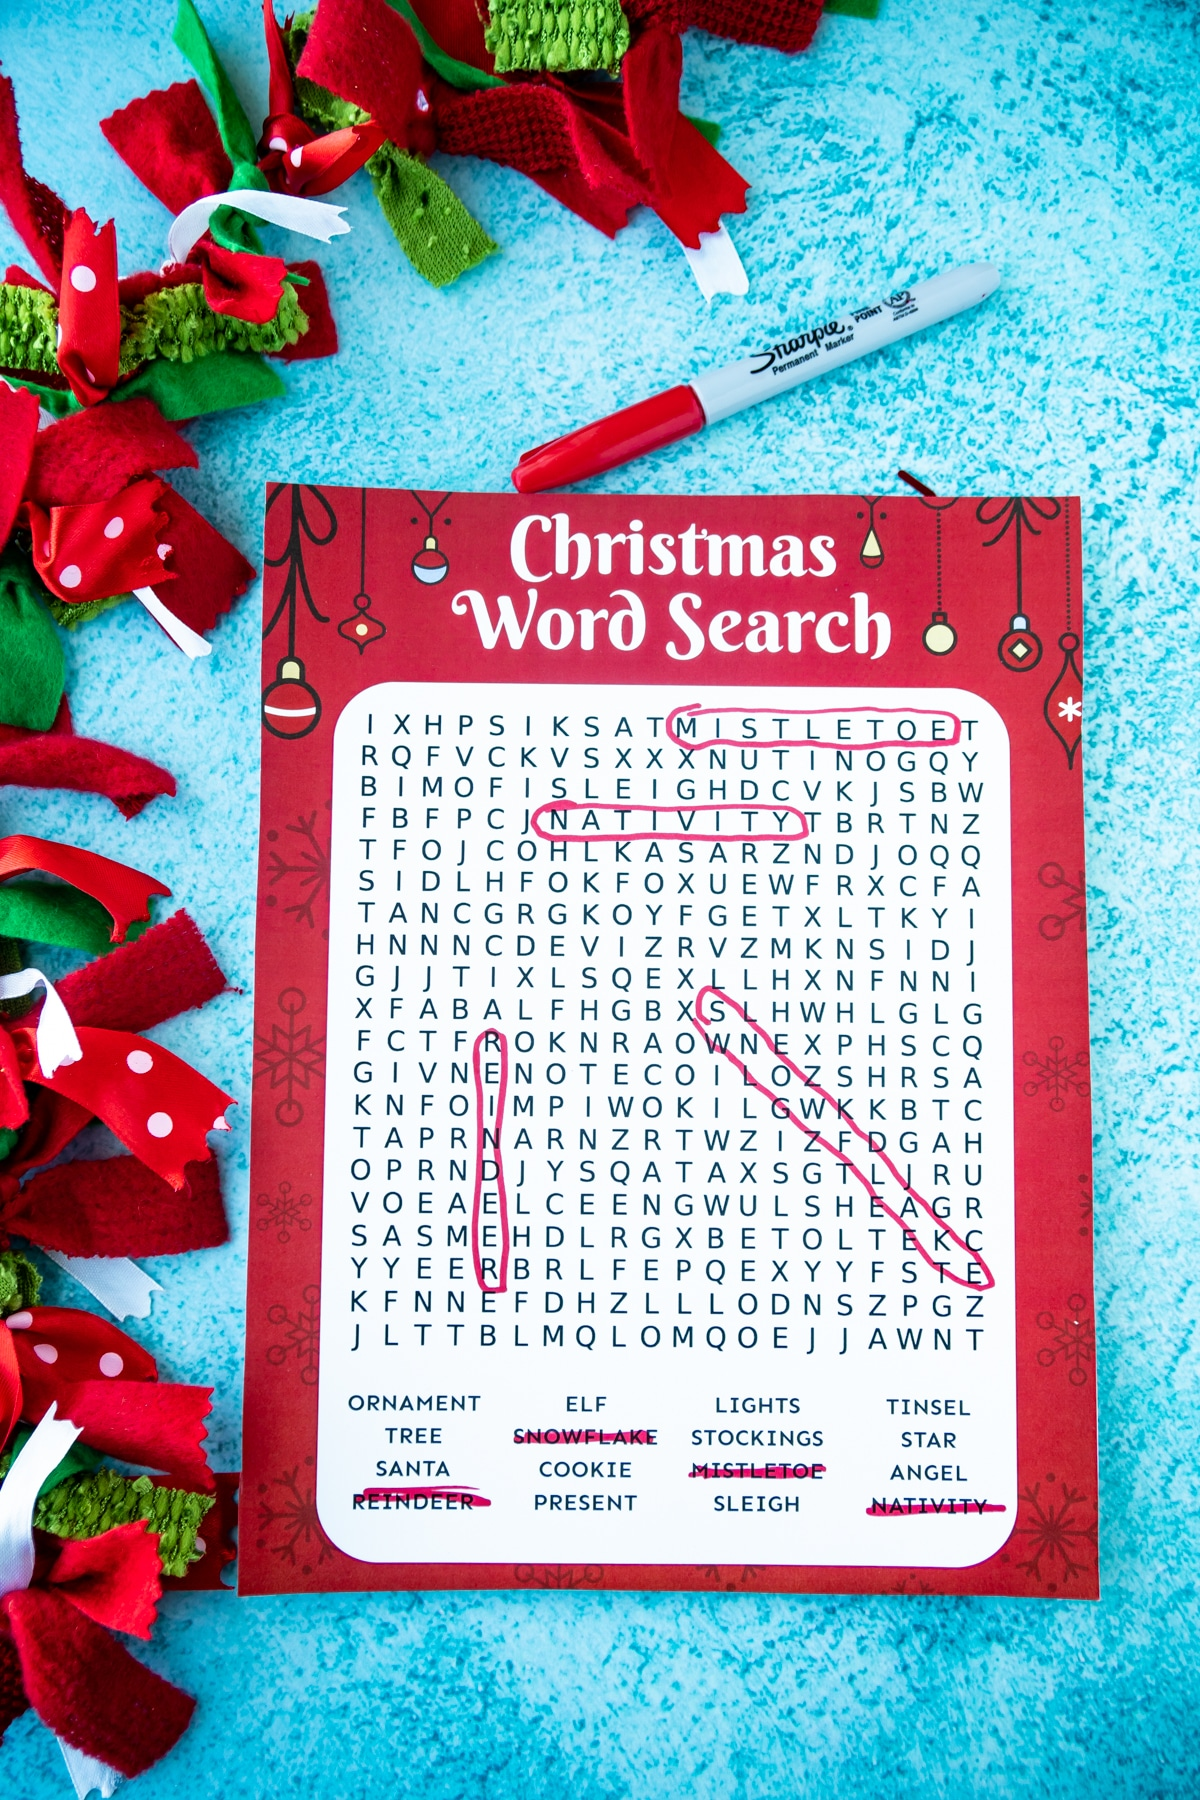 Christmas word search with words circled